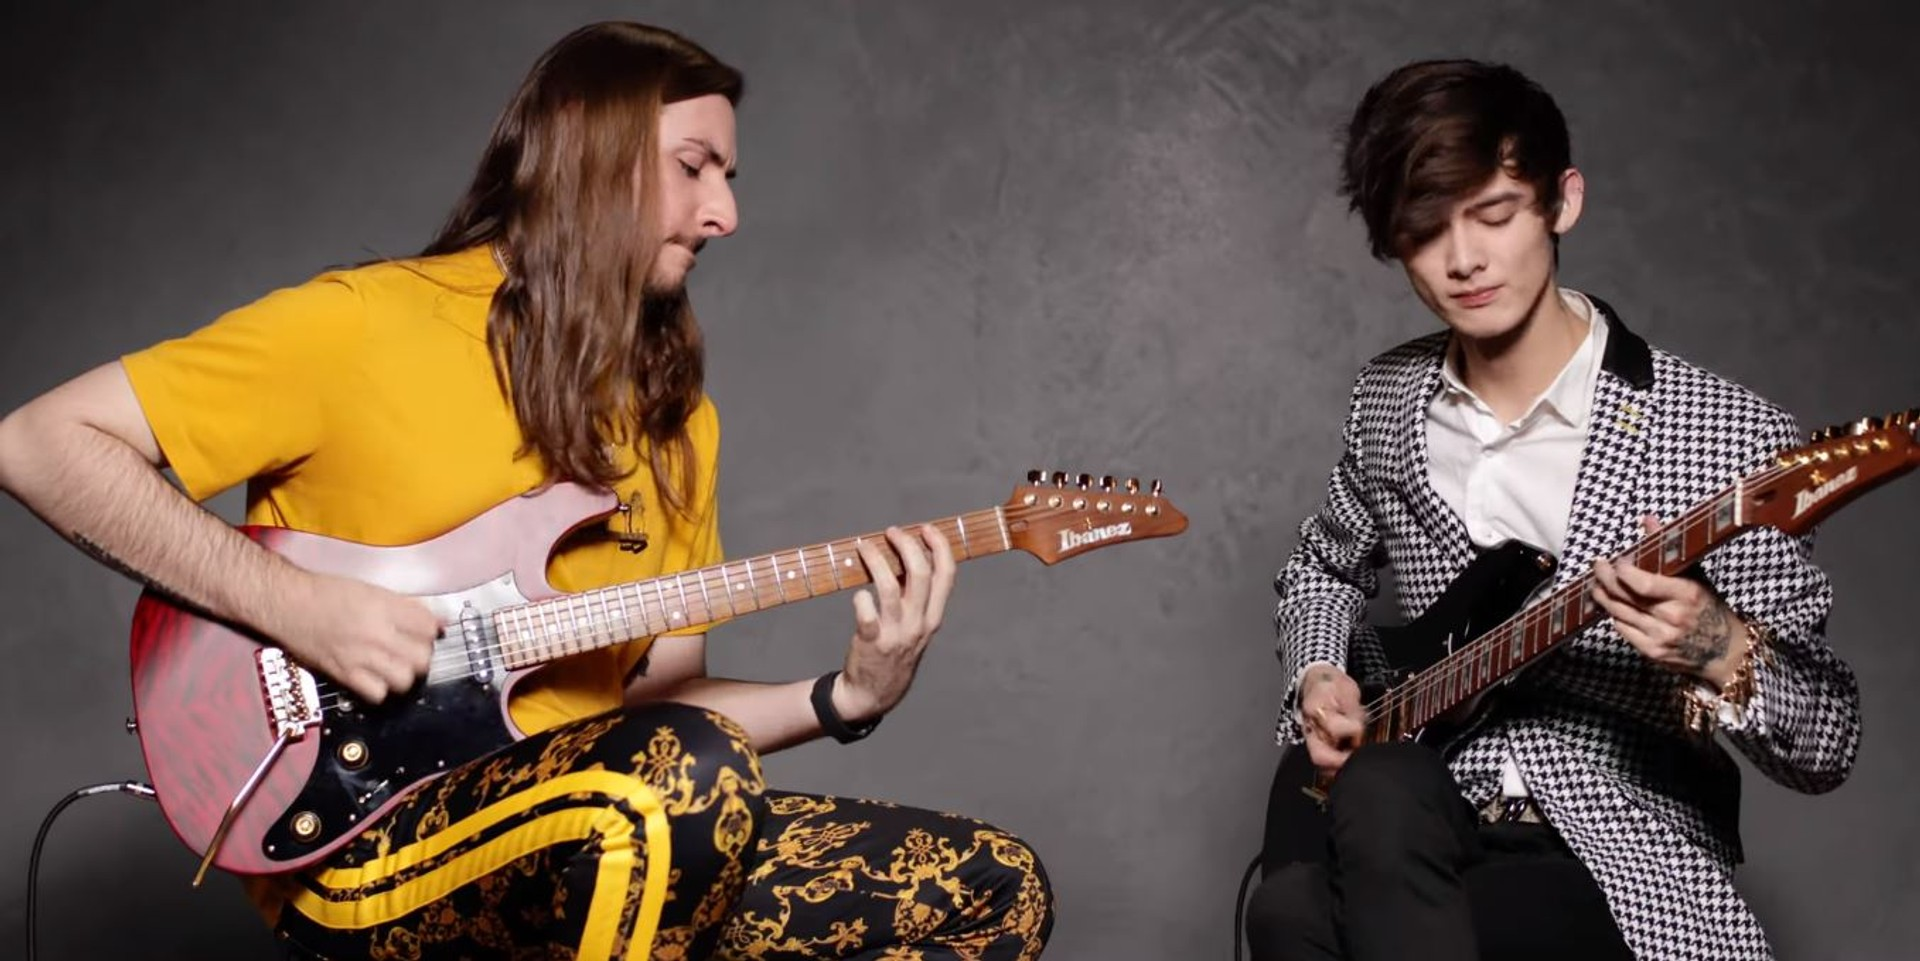 Polyphia demo their signature guitars and pickups – watch